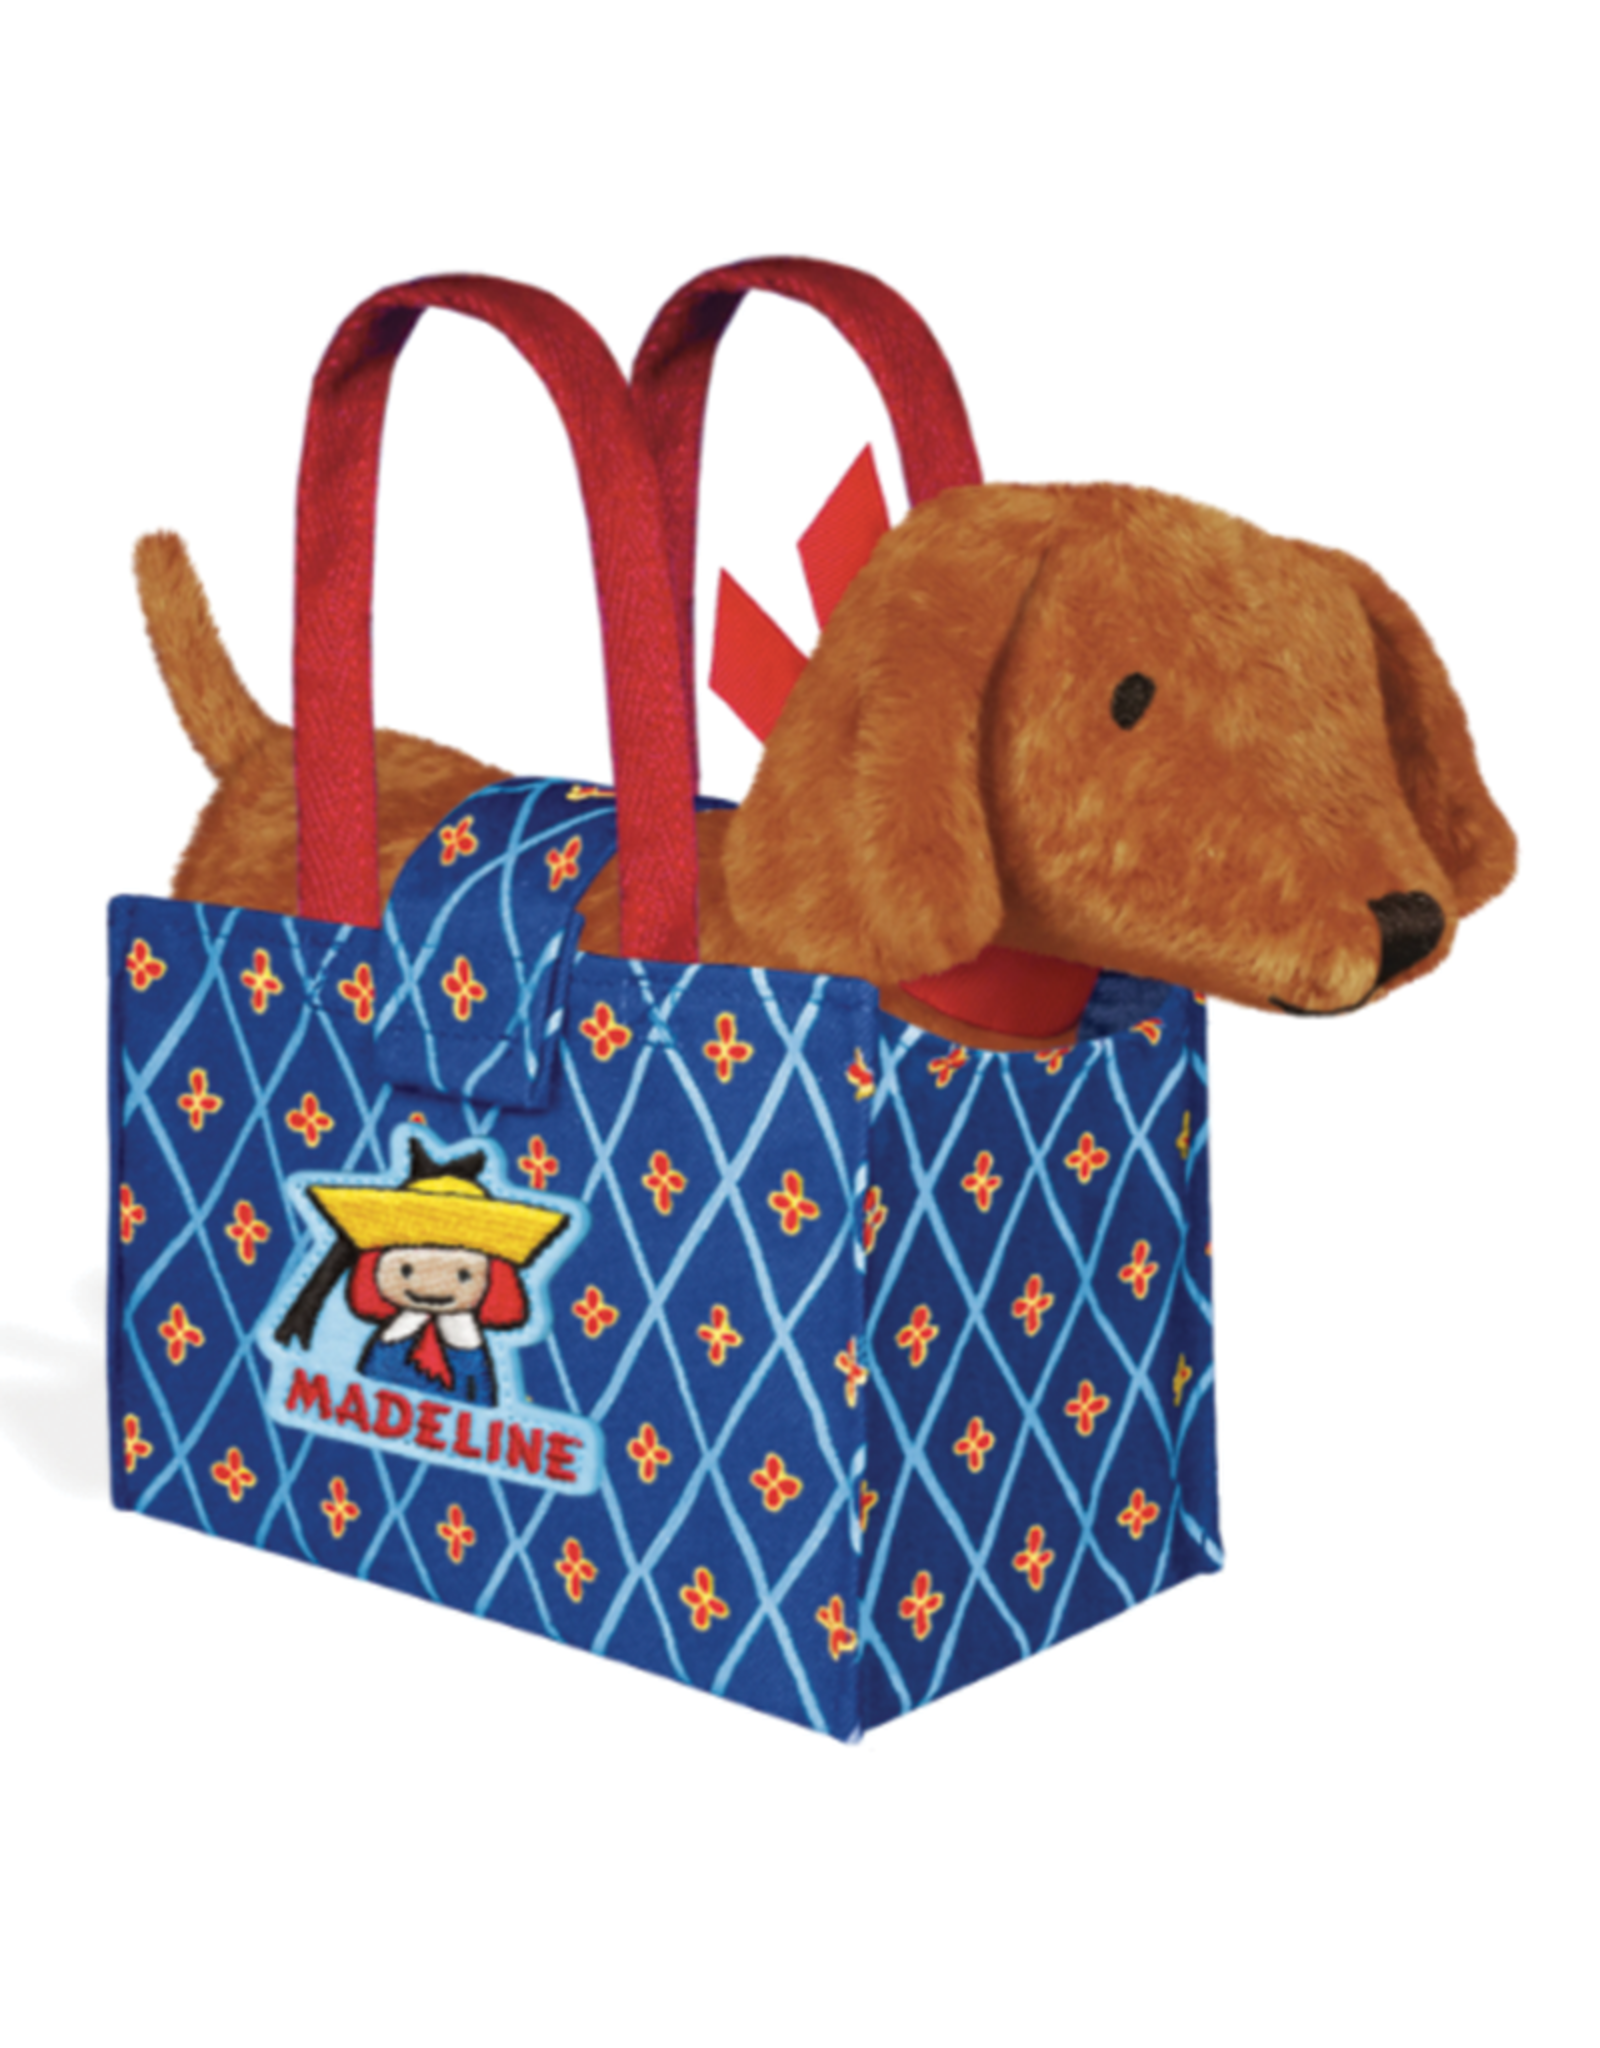 Yottoy Madeline's Dog, Genevieve in Carry Tote